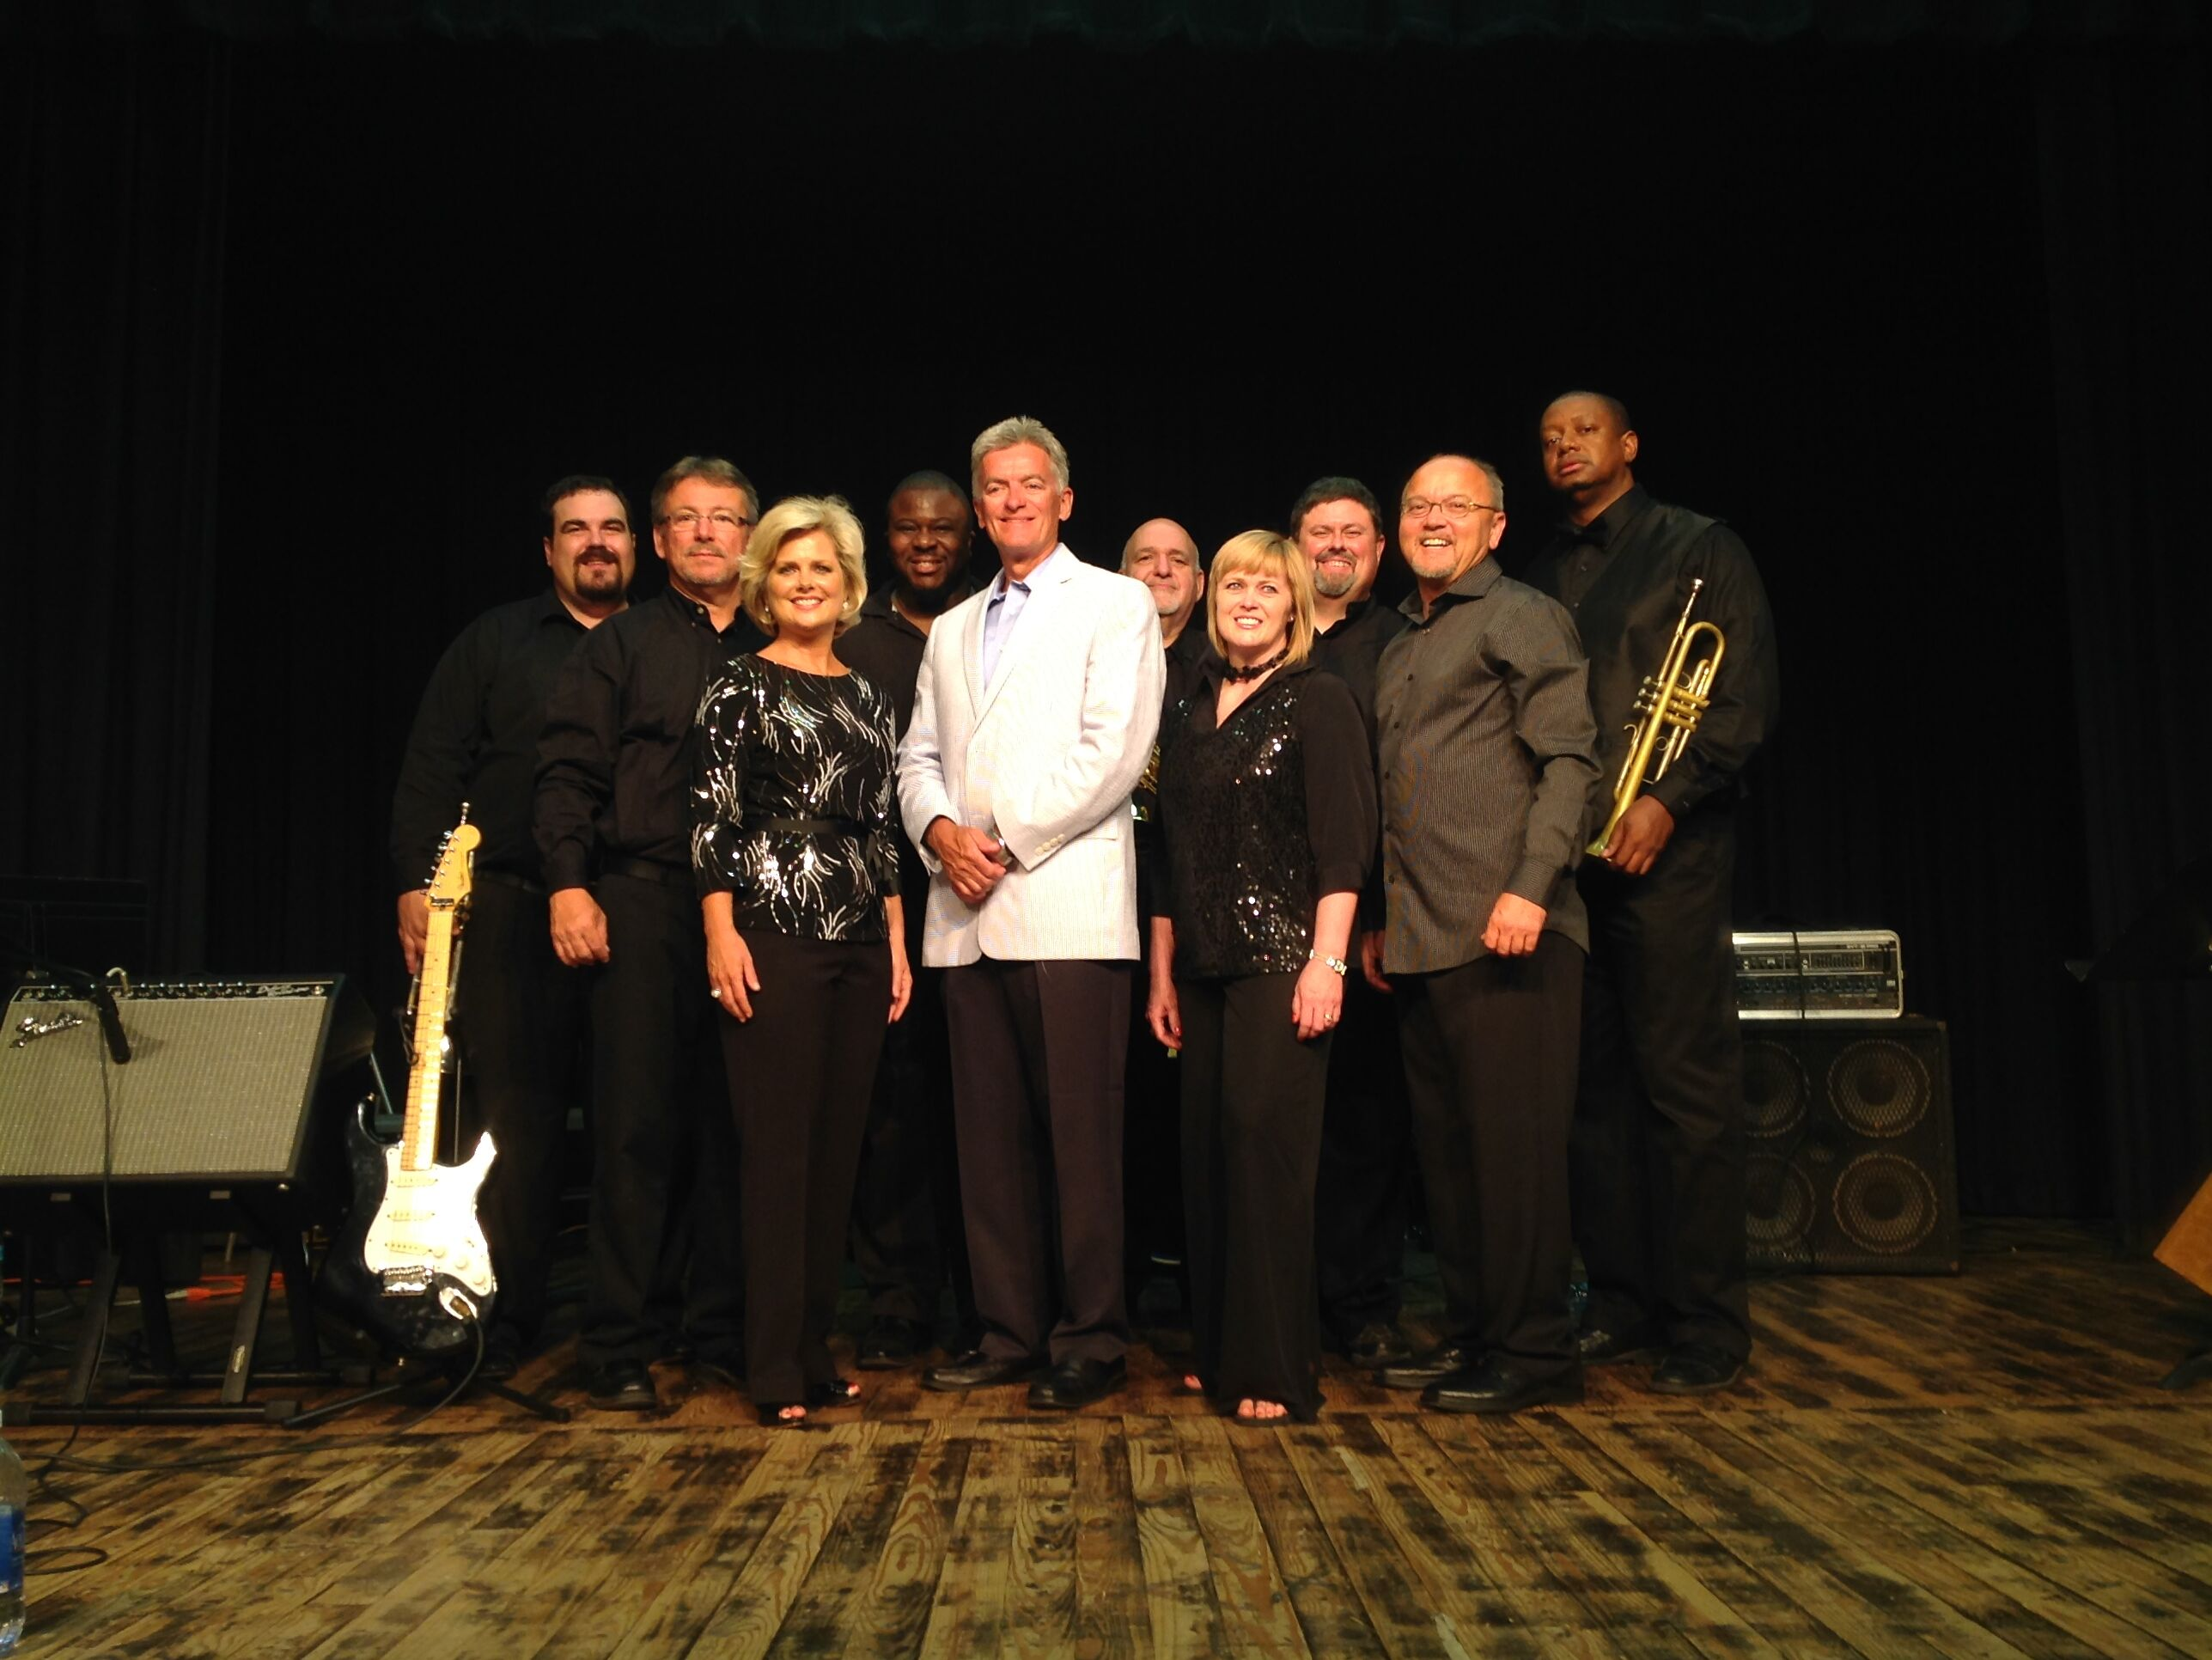 Rewind Of The Shoals - Oldies Band - Russellville, AL